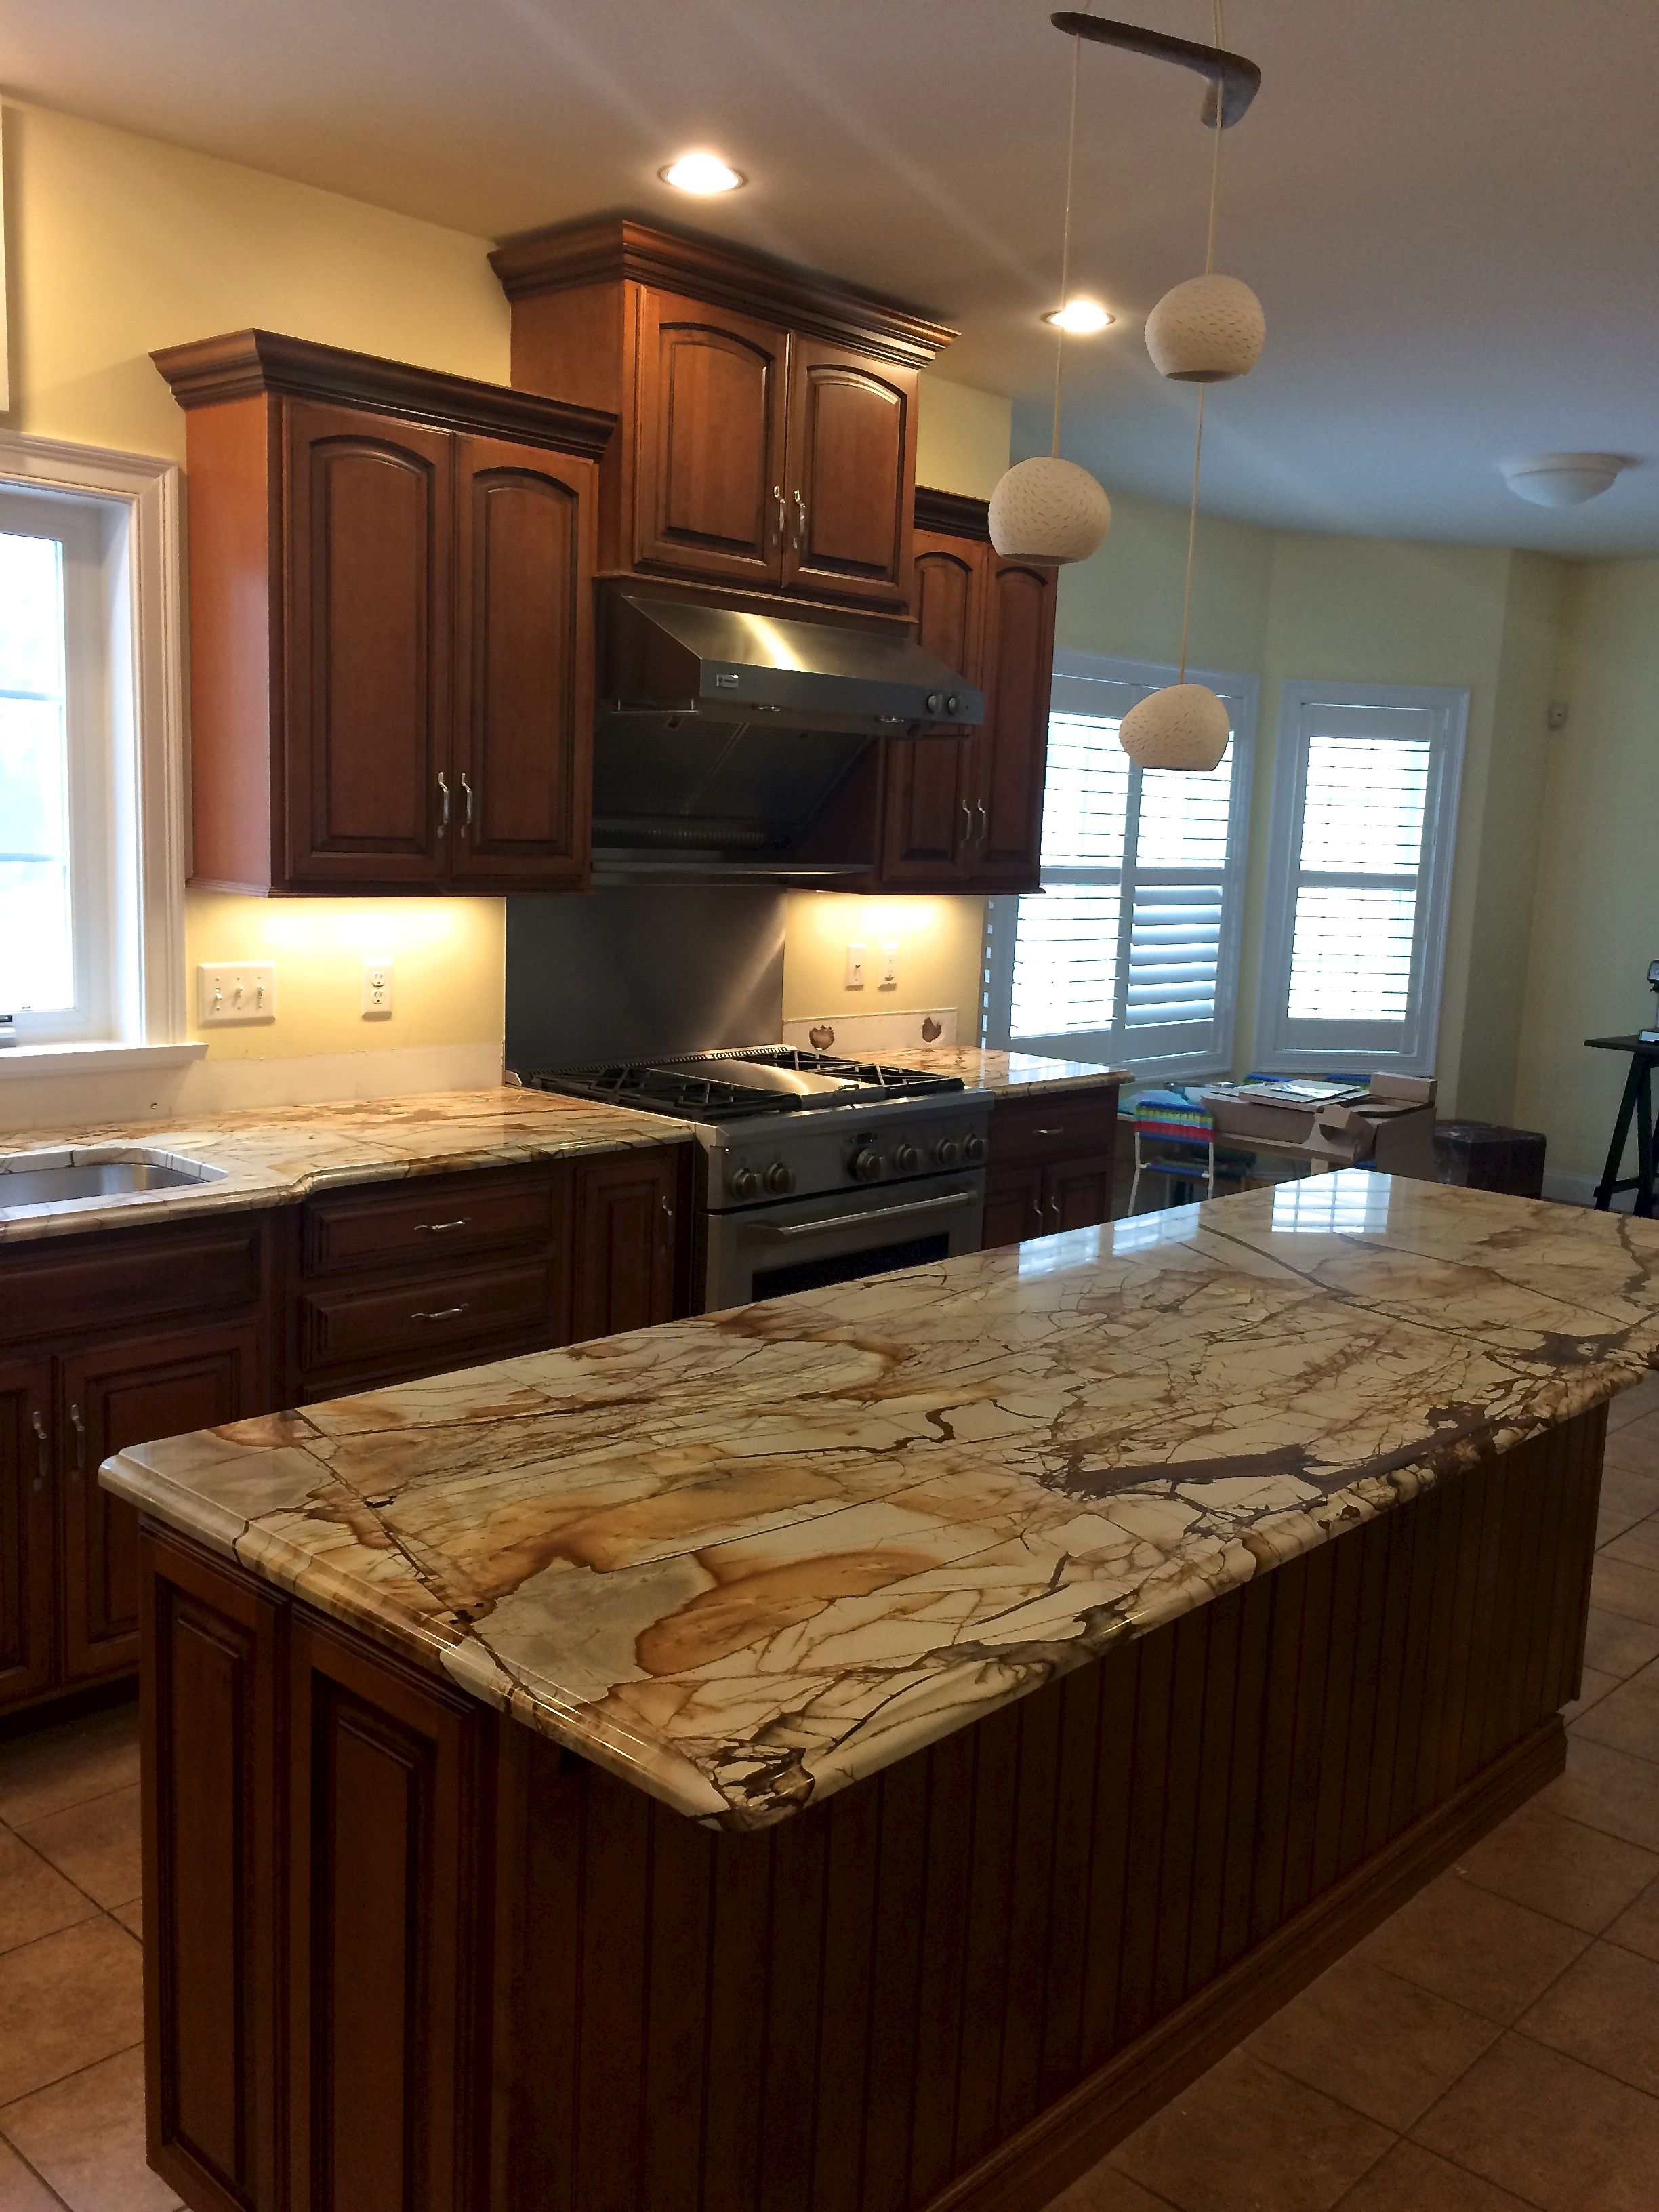 An In Progress Photo Of A Kitchen Countertop Replacement With Beautiful New  Roma Imperial Quartzite Countertops